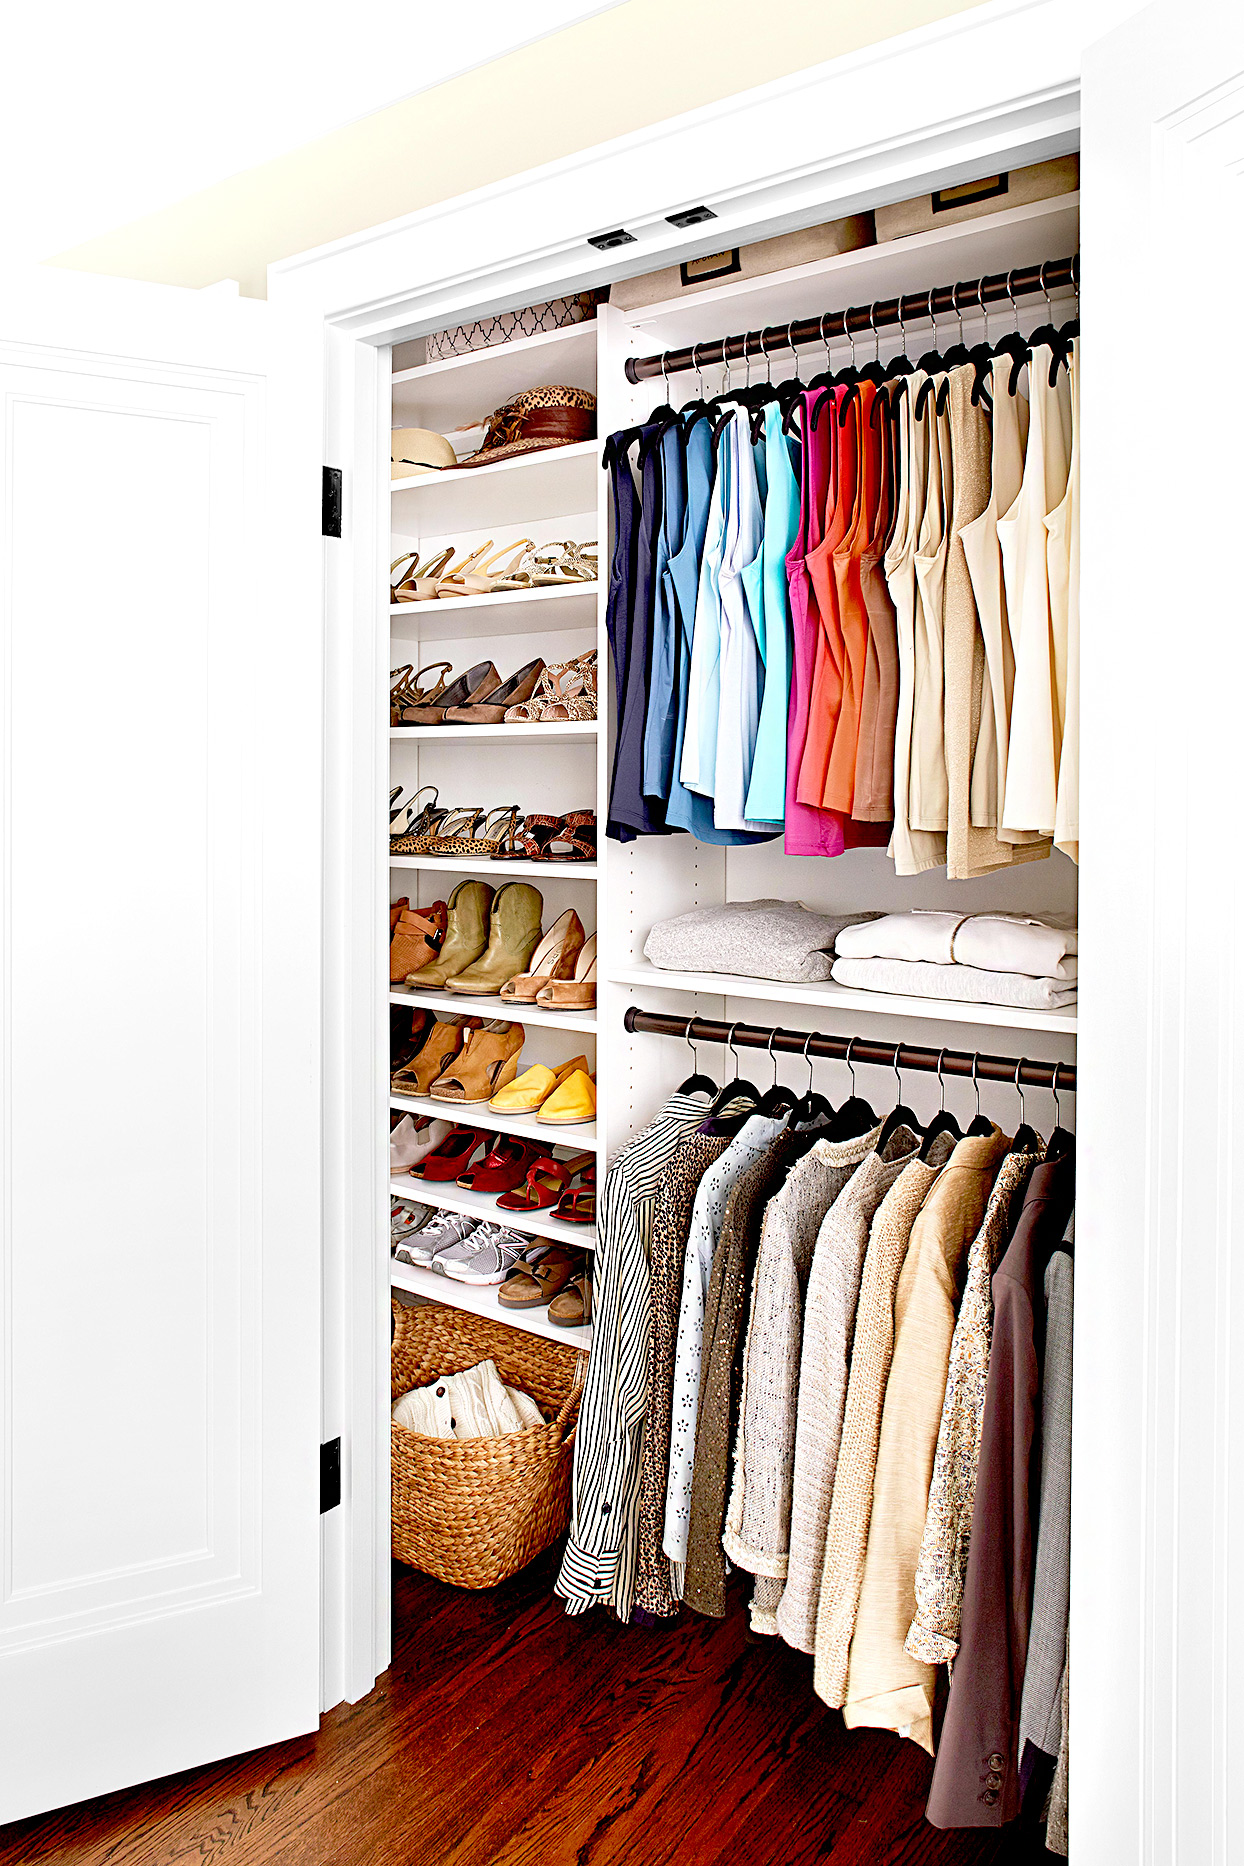 Organized closet with jackets, shirts, and shoes